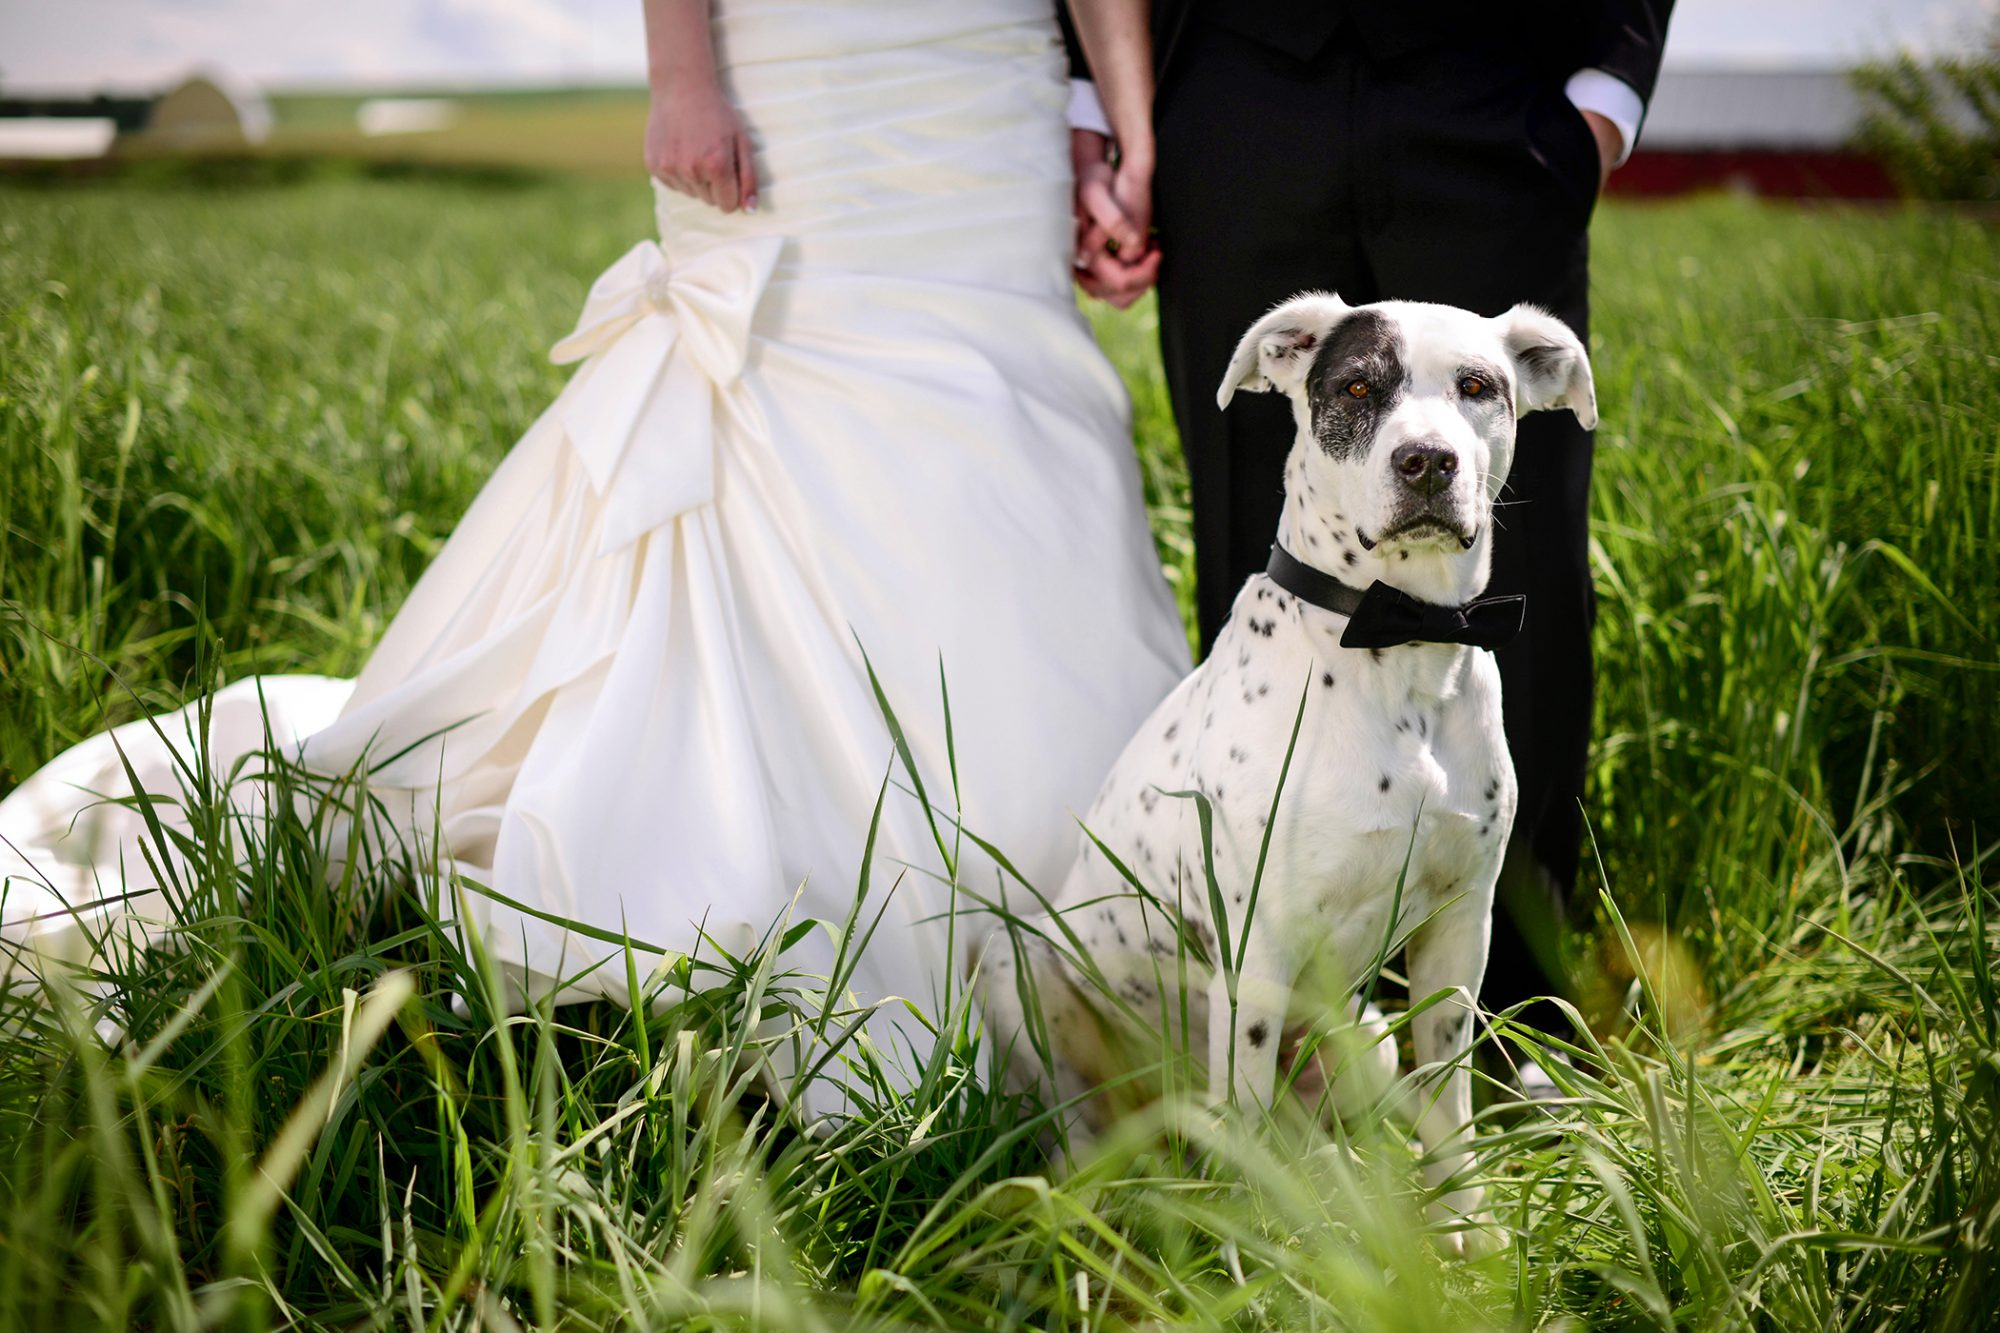 Spotted white and black dog sits at feet of bride and groom